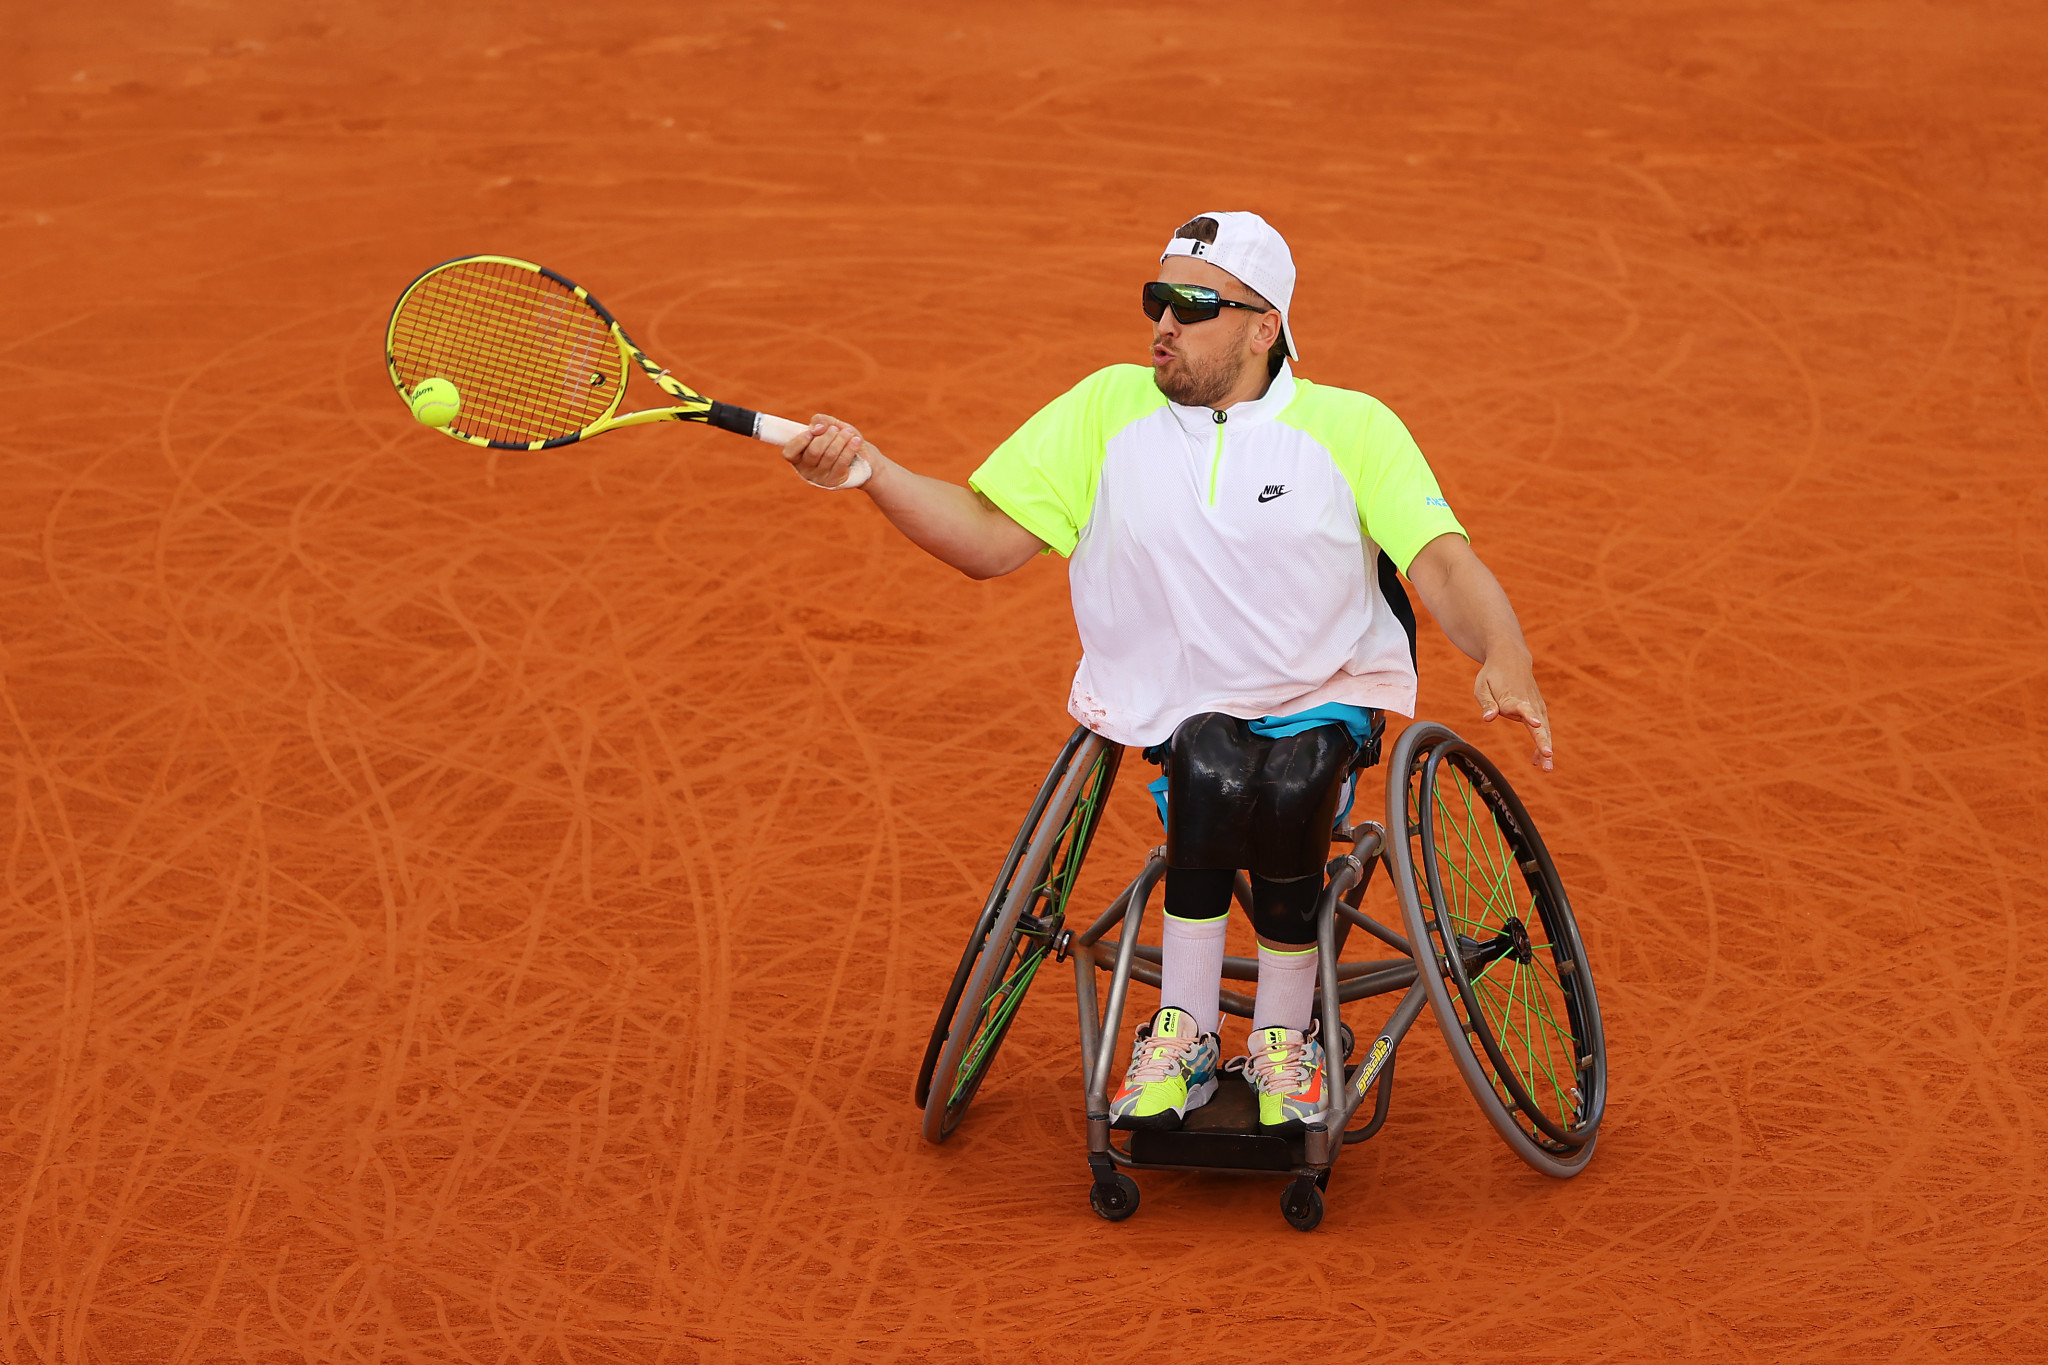 """Dylan Alcott said it was a """"massive honour"""" to be the quads world number one at the end of the year ©Getty Images"""